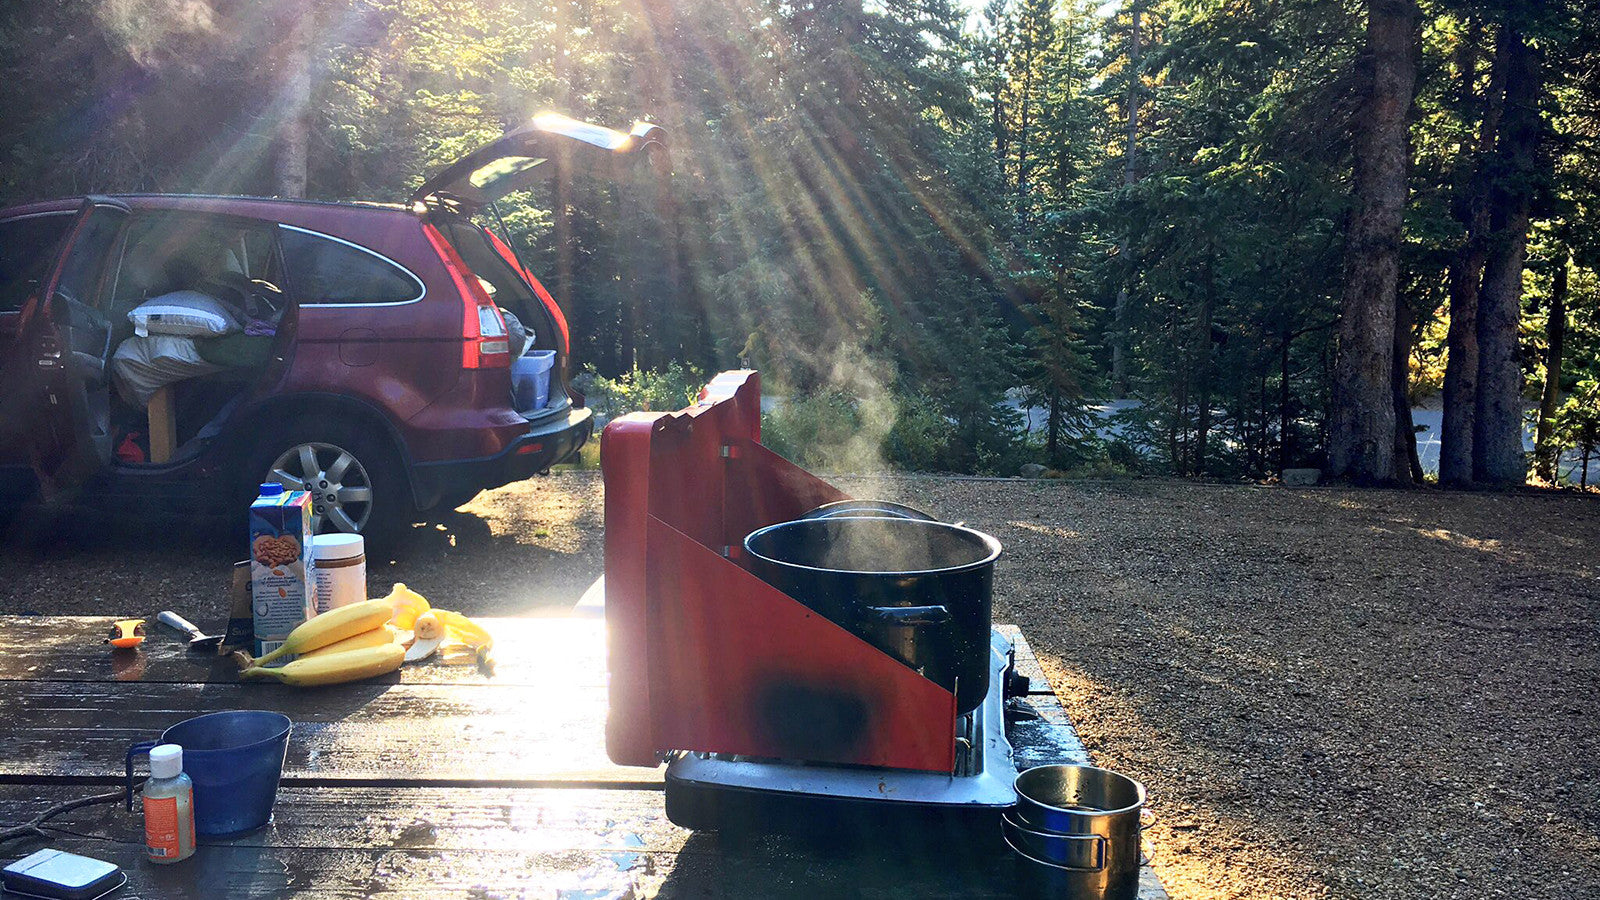 Cooking at camp.